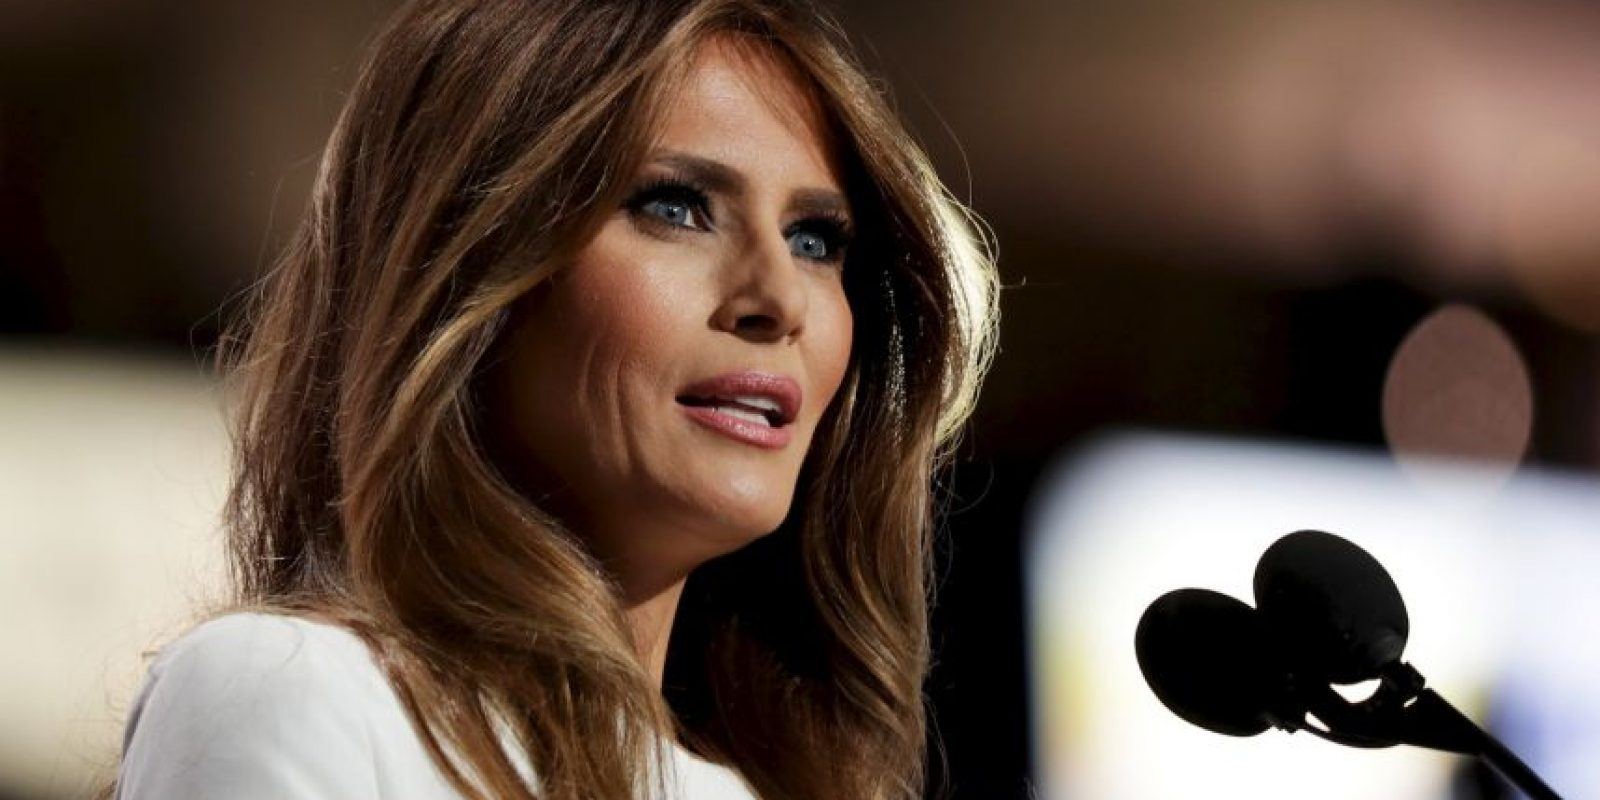 CLEVELAND, OH – JULY 18: Melania Trump, wife of Presumptive Republican presidential nominee Donald Trump, delivers a speech on the first day of the Republican National Convention on July 18, 2016 at the Quicken Loans Arena in Cleveland, Ohio. An estimated 50,000 people are expected in Cleveland, including hundreds of protesters and members of the media. The four-day Republican National Convention kicks off on July 18. (Photo by Chip Somodevilla/Getty Images) Foto: Getty Images